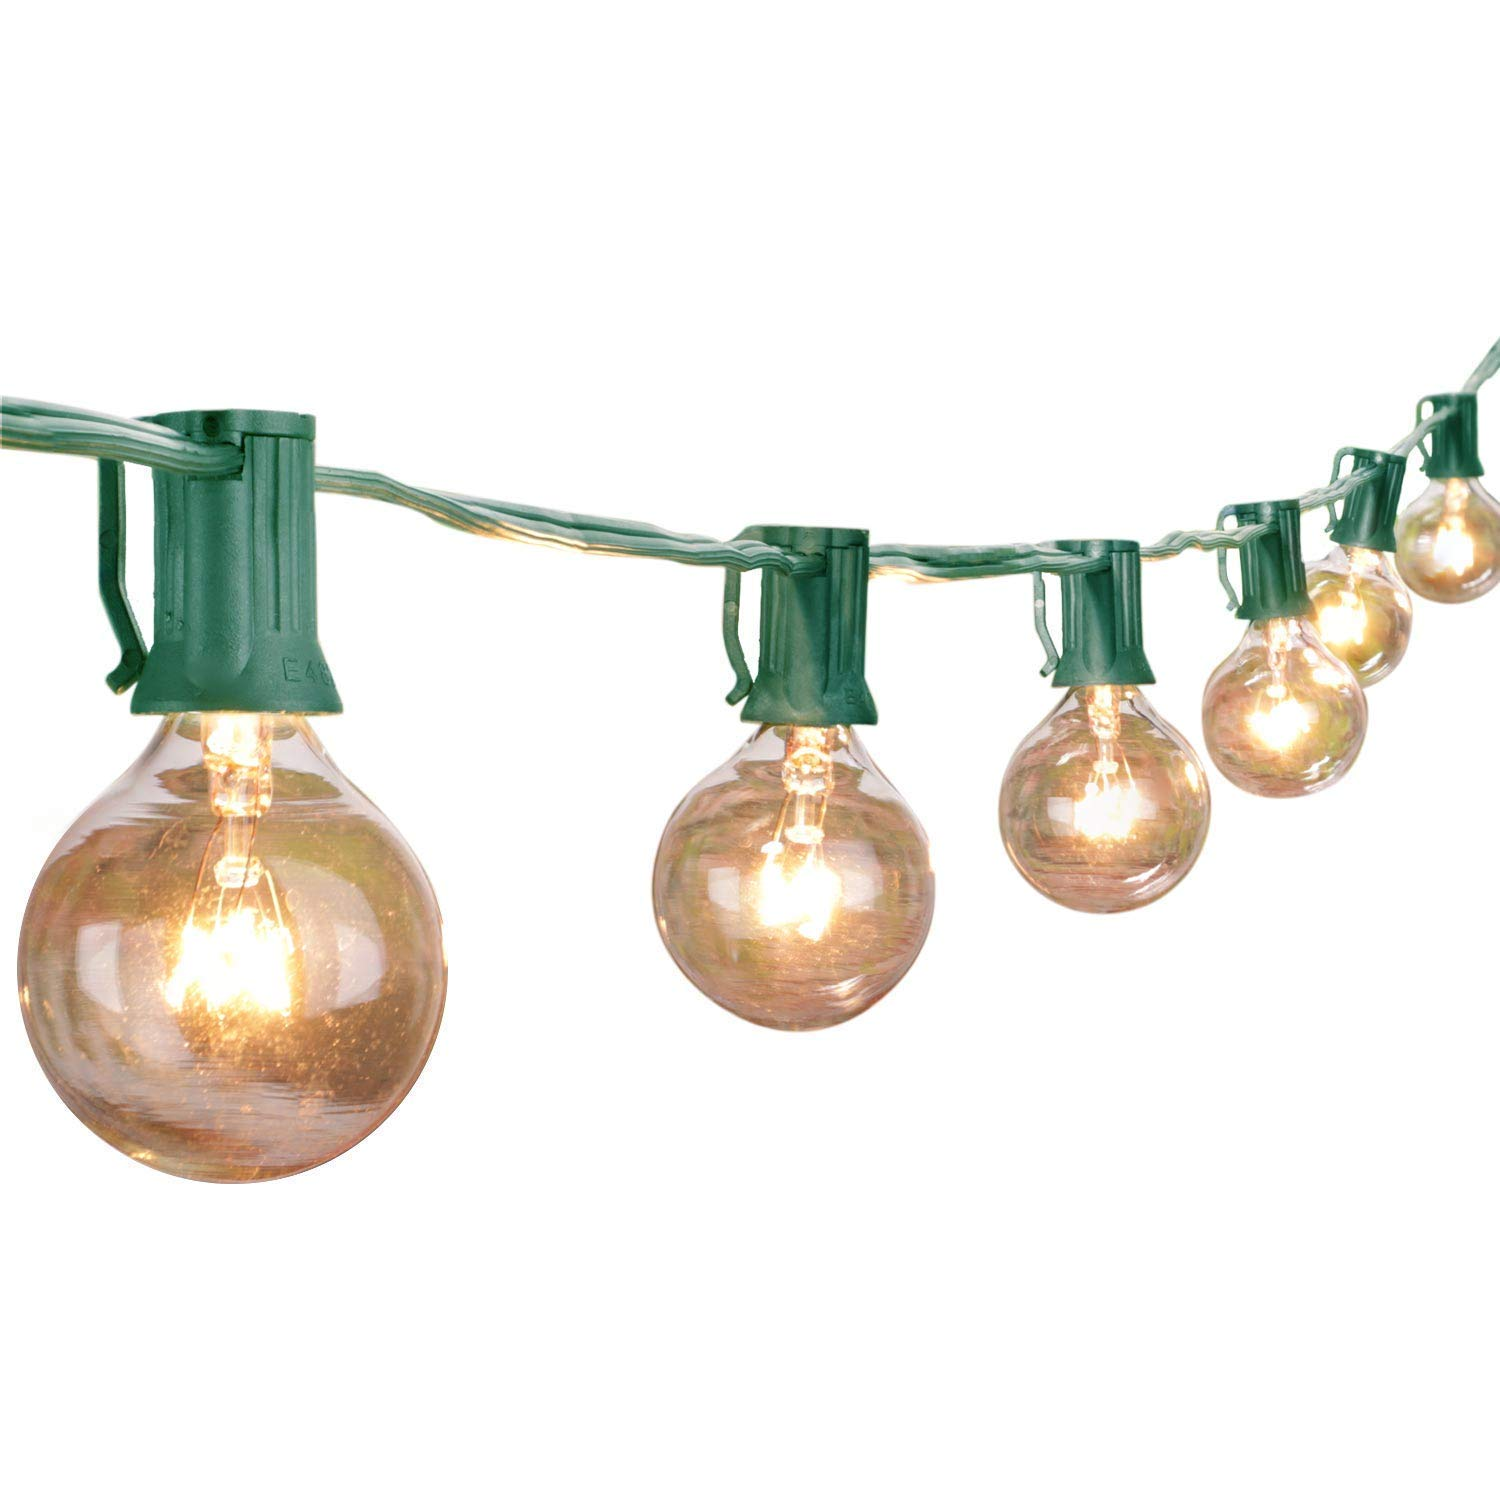 G40 globe string lights with 25 clear bulbs ul list for indoor outdoor commercial use vintage backyard patio lights outdoor string lights for garden